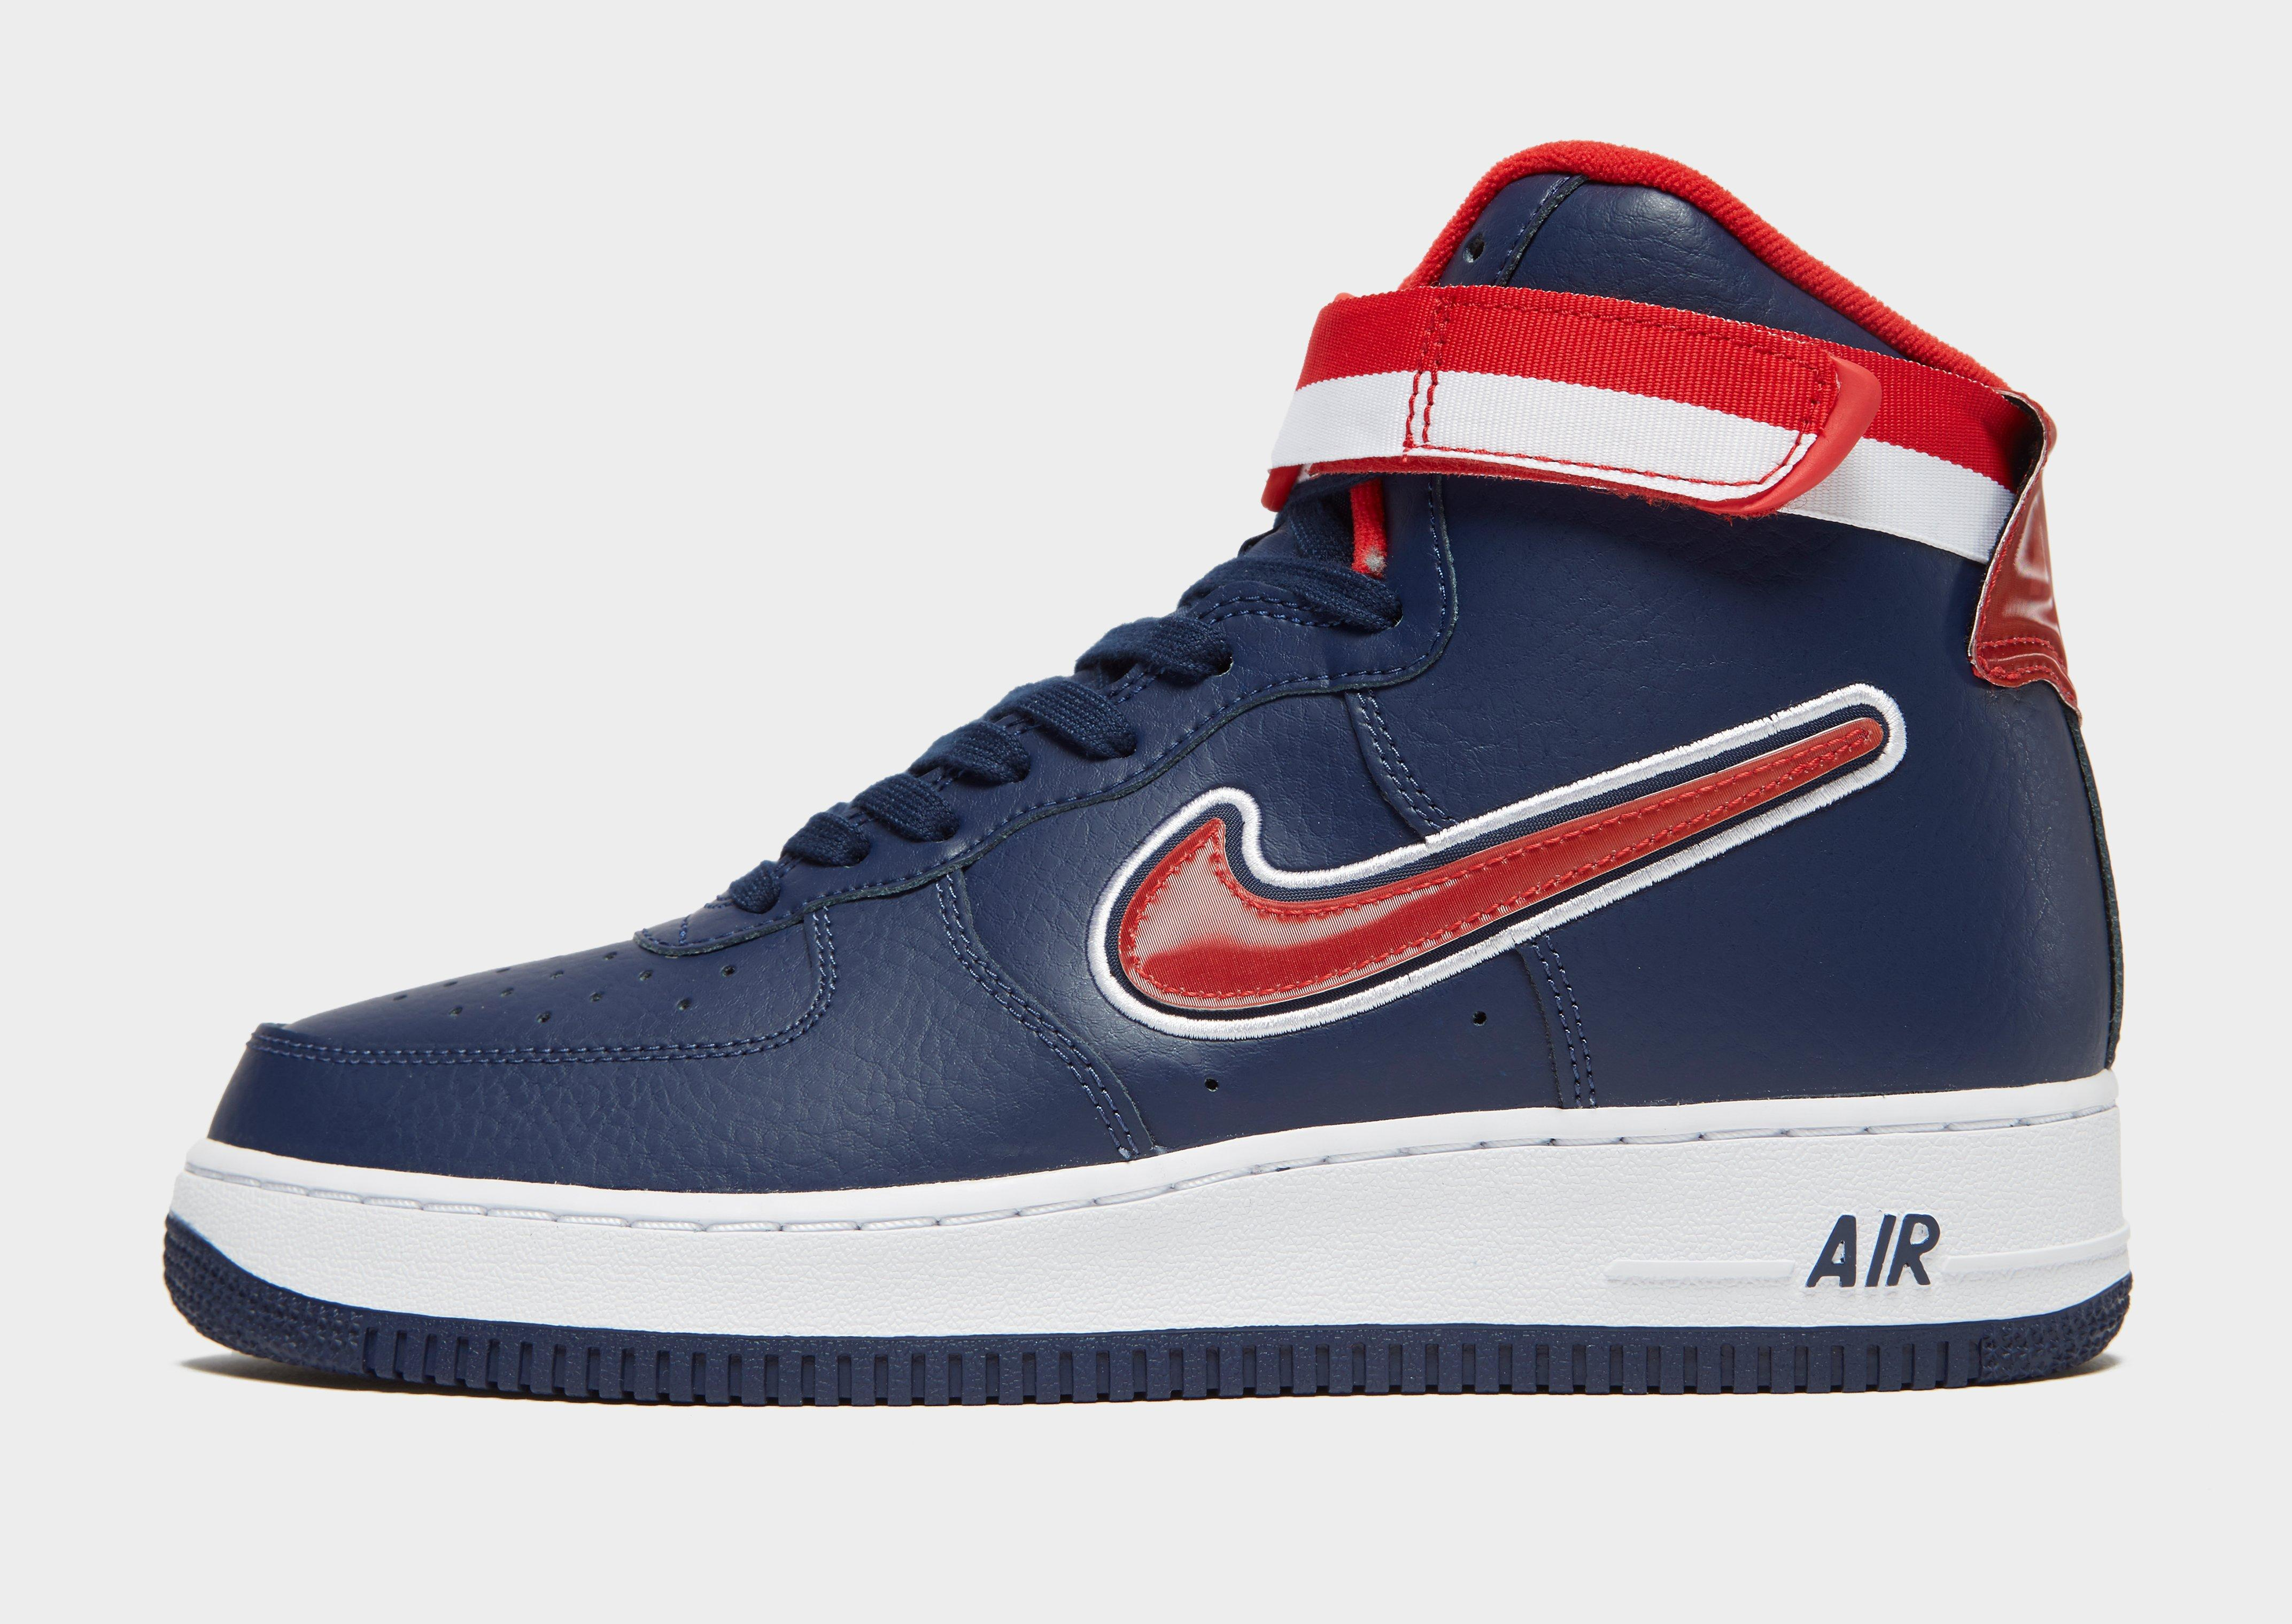 Nike Leather Air Force 1 High Nba In Blue Red Blue For Men Lyst